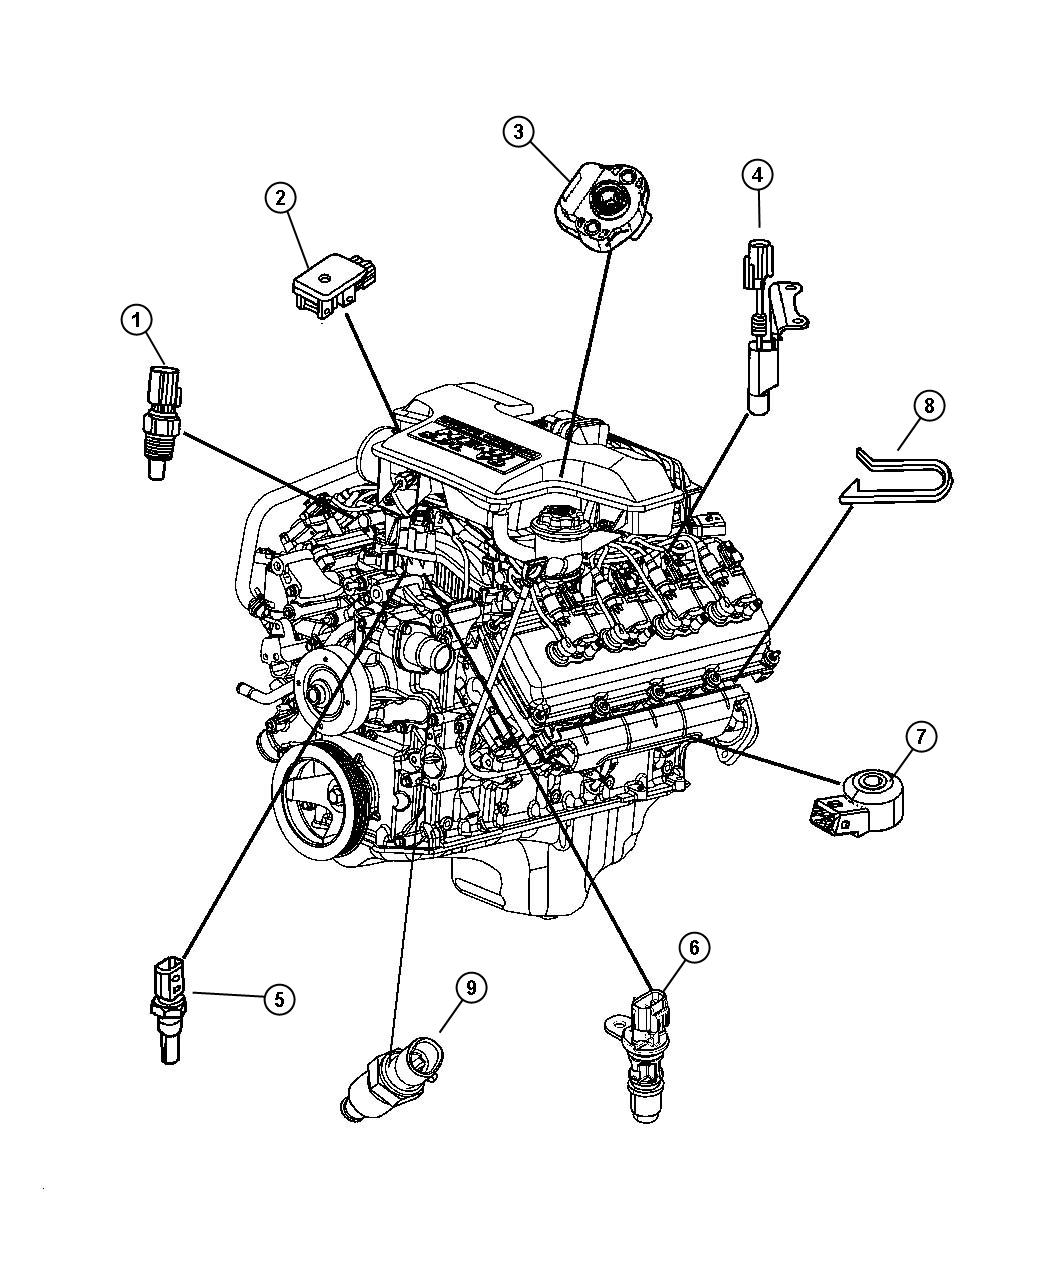 Dodge Ram Engine Wiring Diagram Images